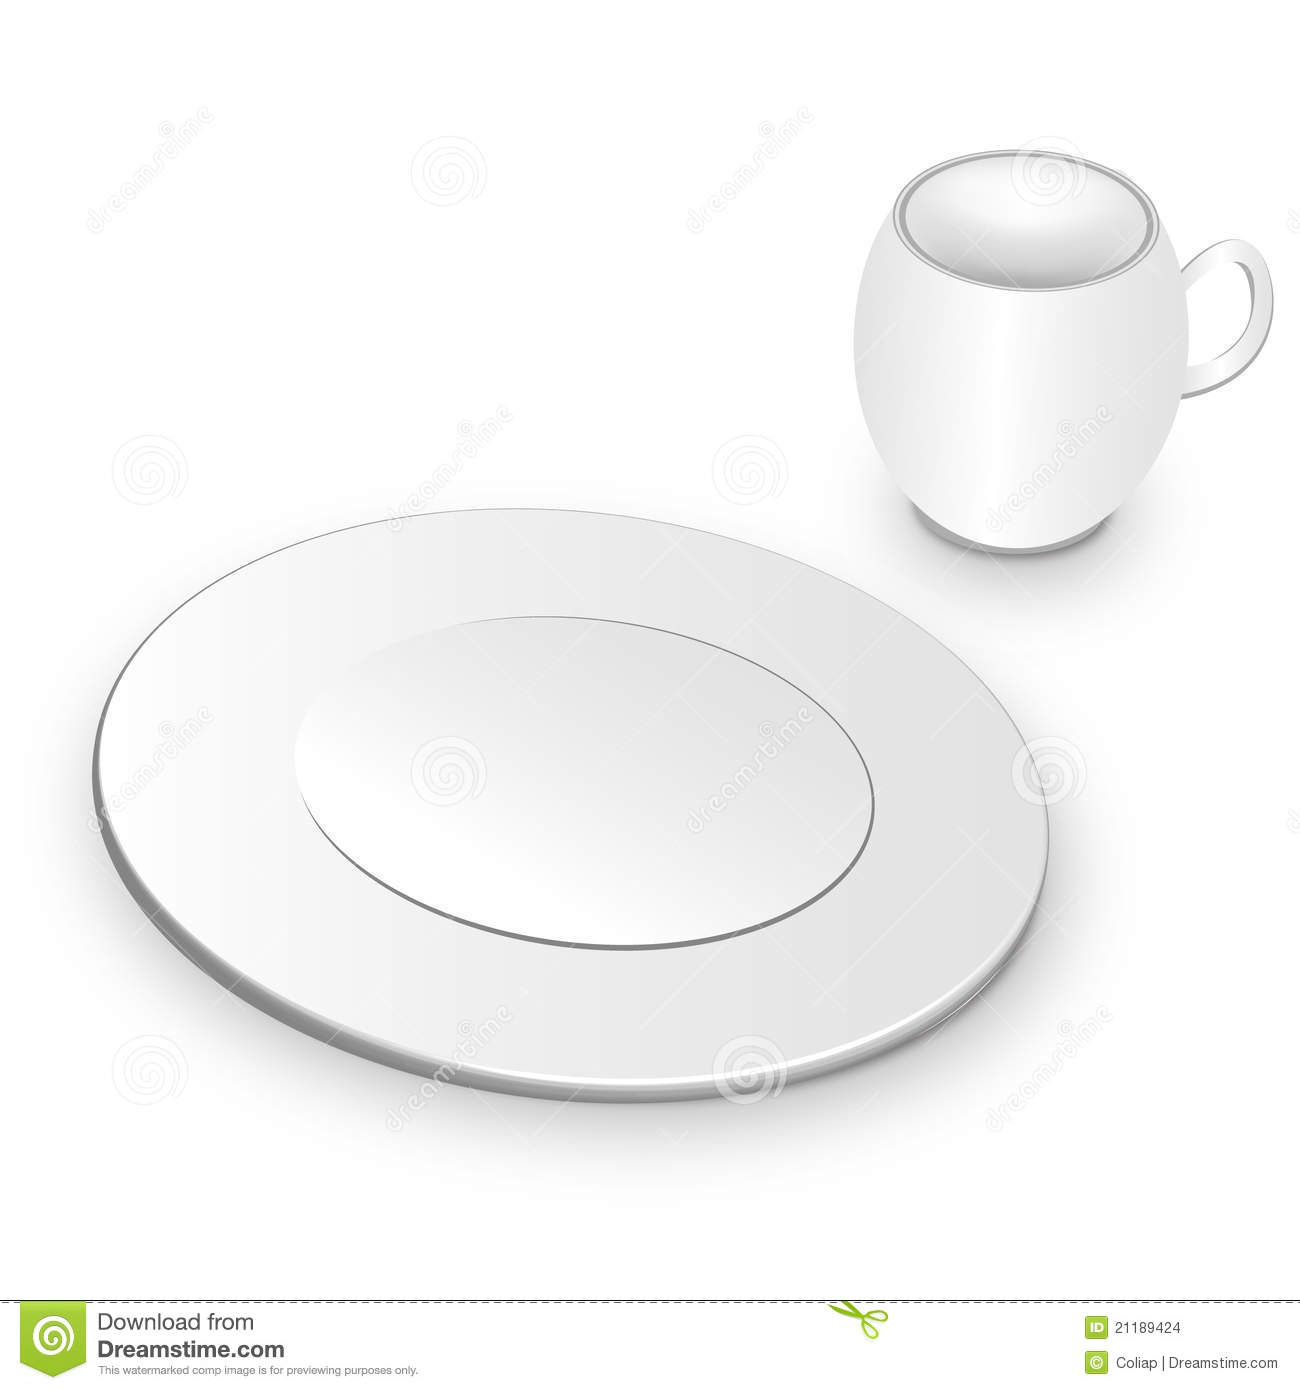 White plate and cup